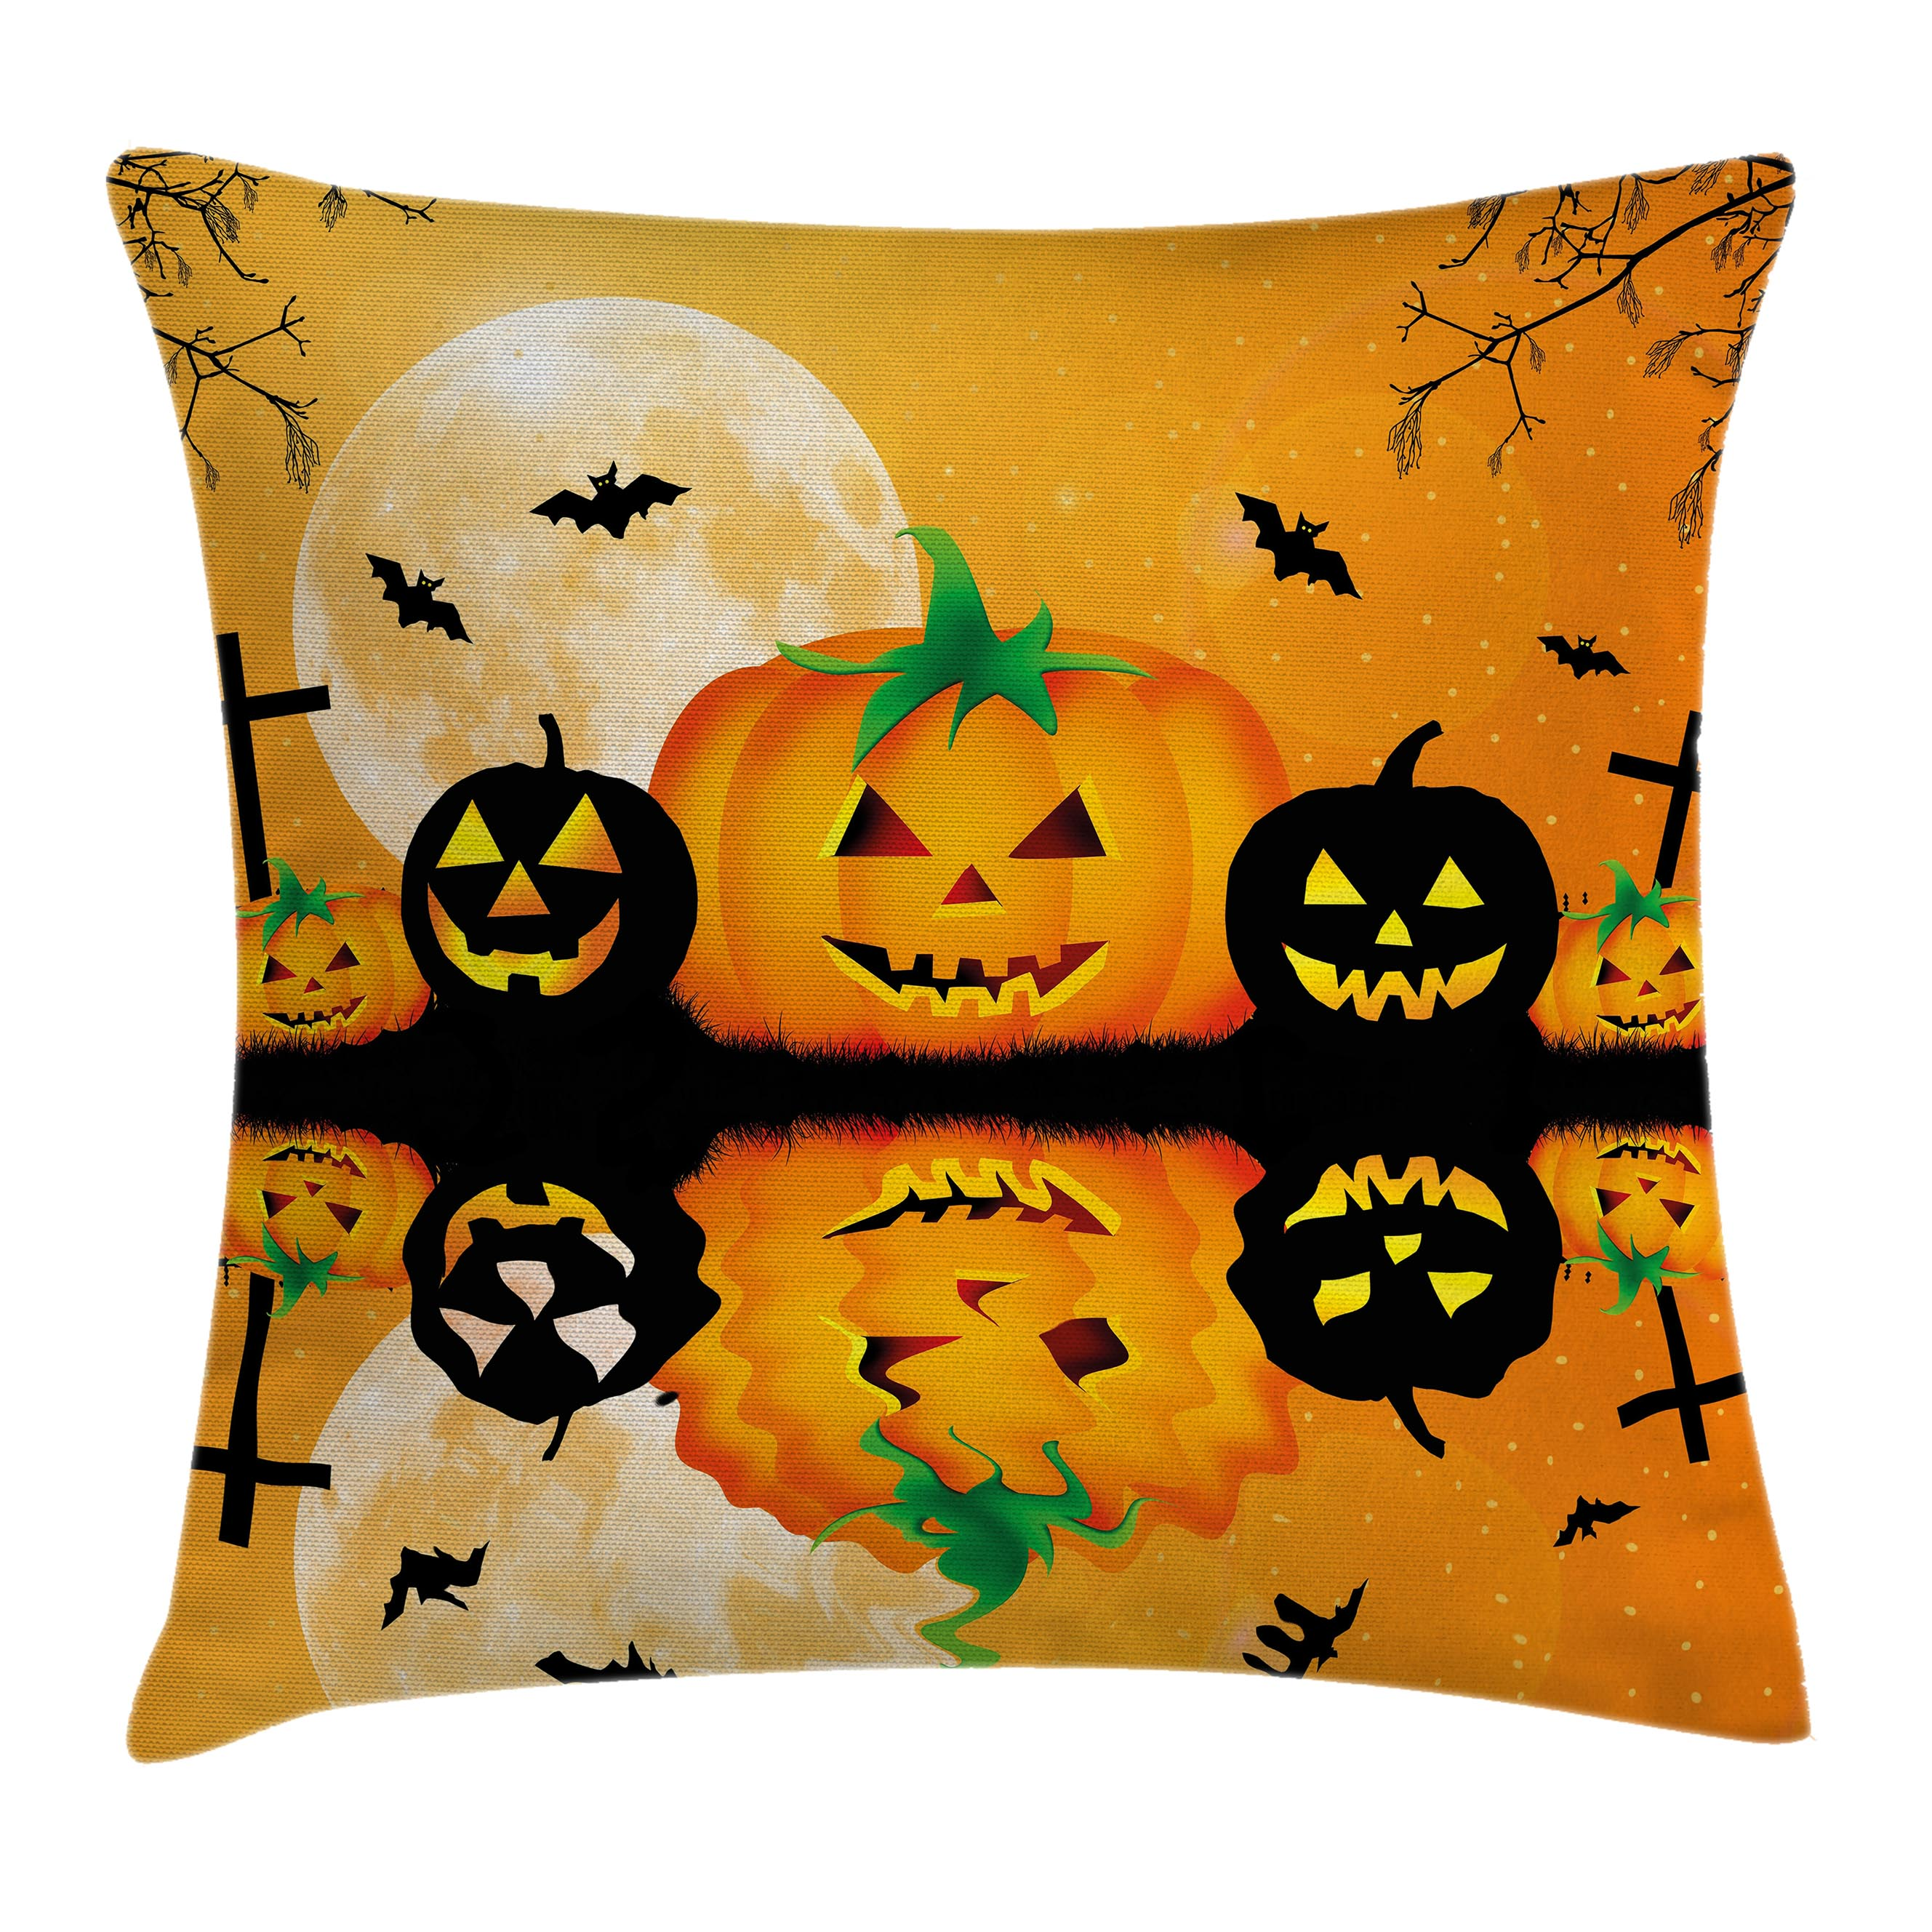 Halloween Decorations Throw Pillow Cushion Cover Spooky Carved Halloween Pumpkin Full Moon With Bats And Grave Lake Decorative Square Accent Pillow